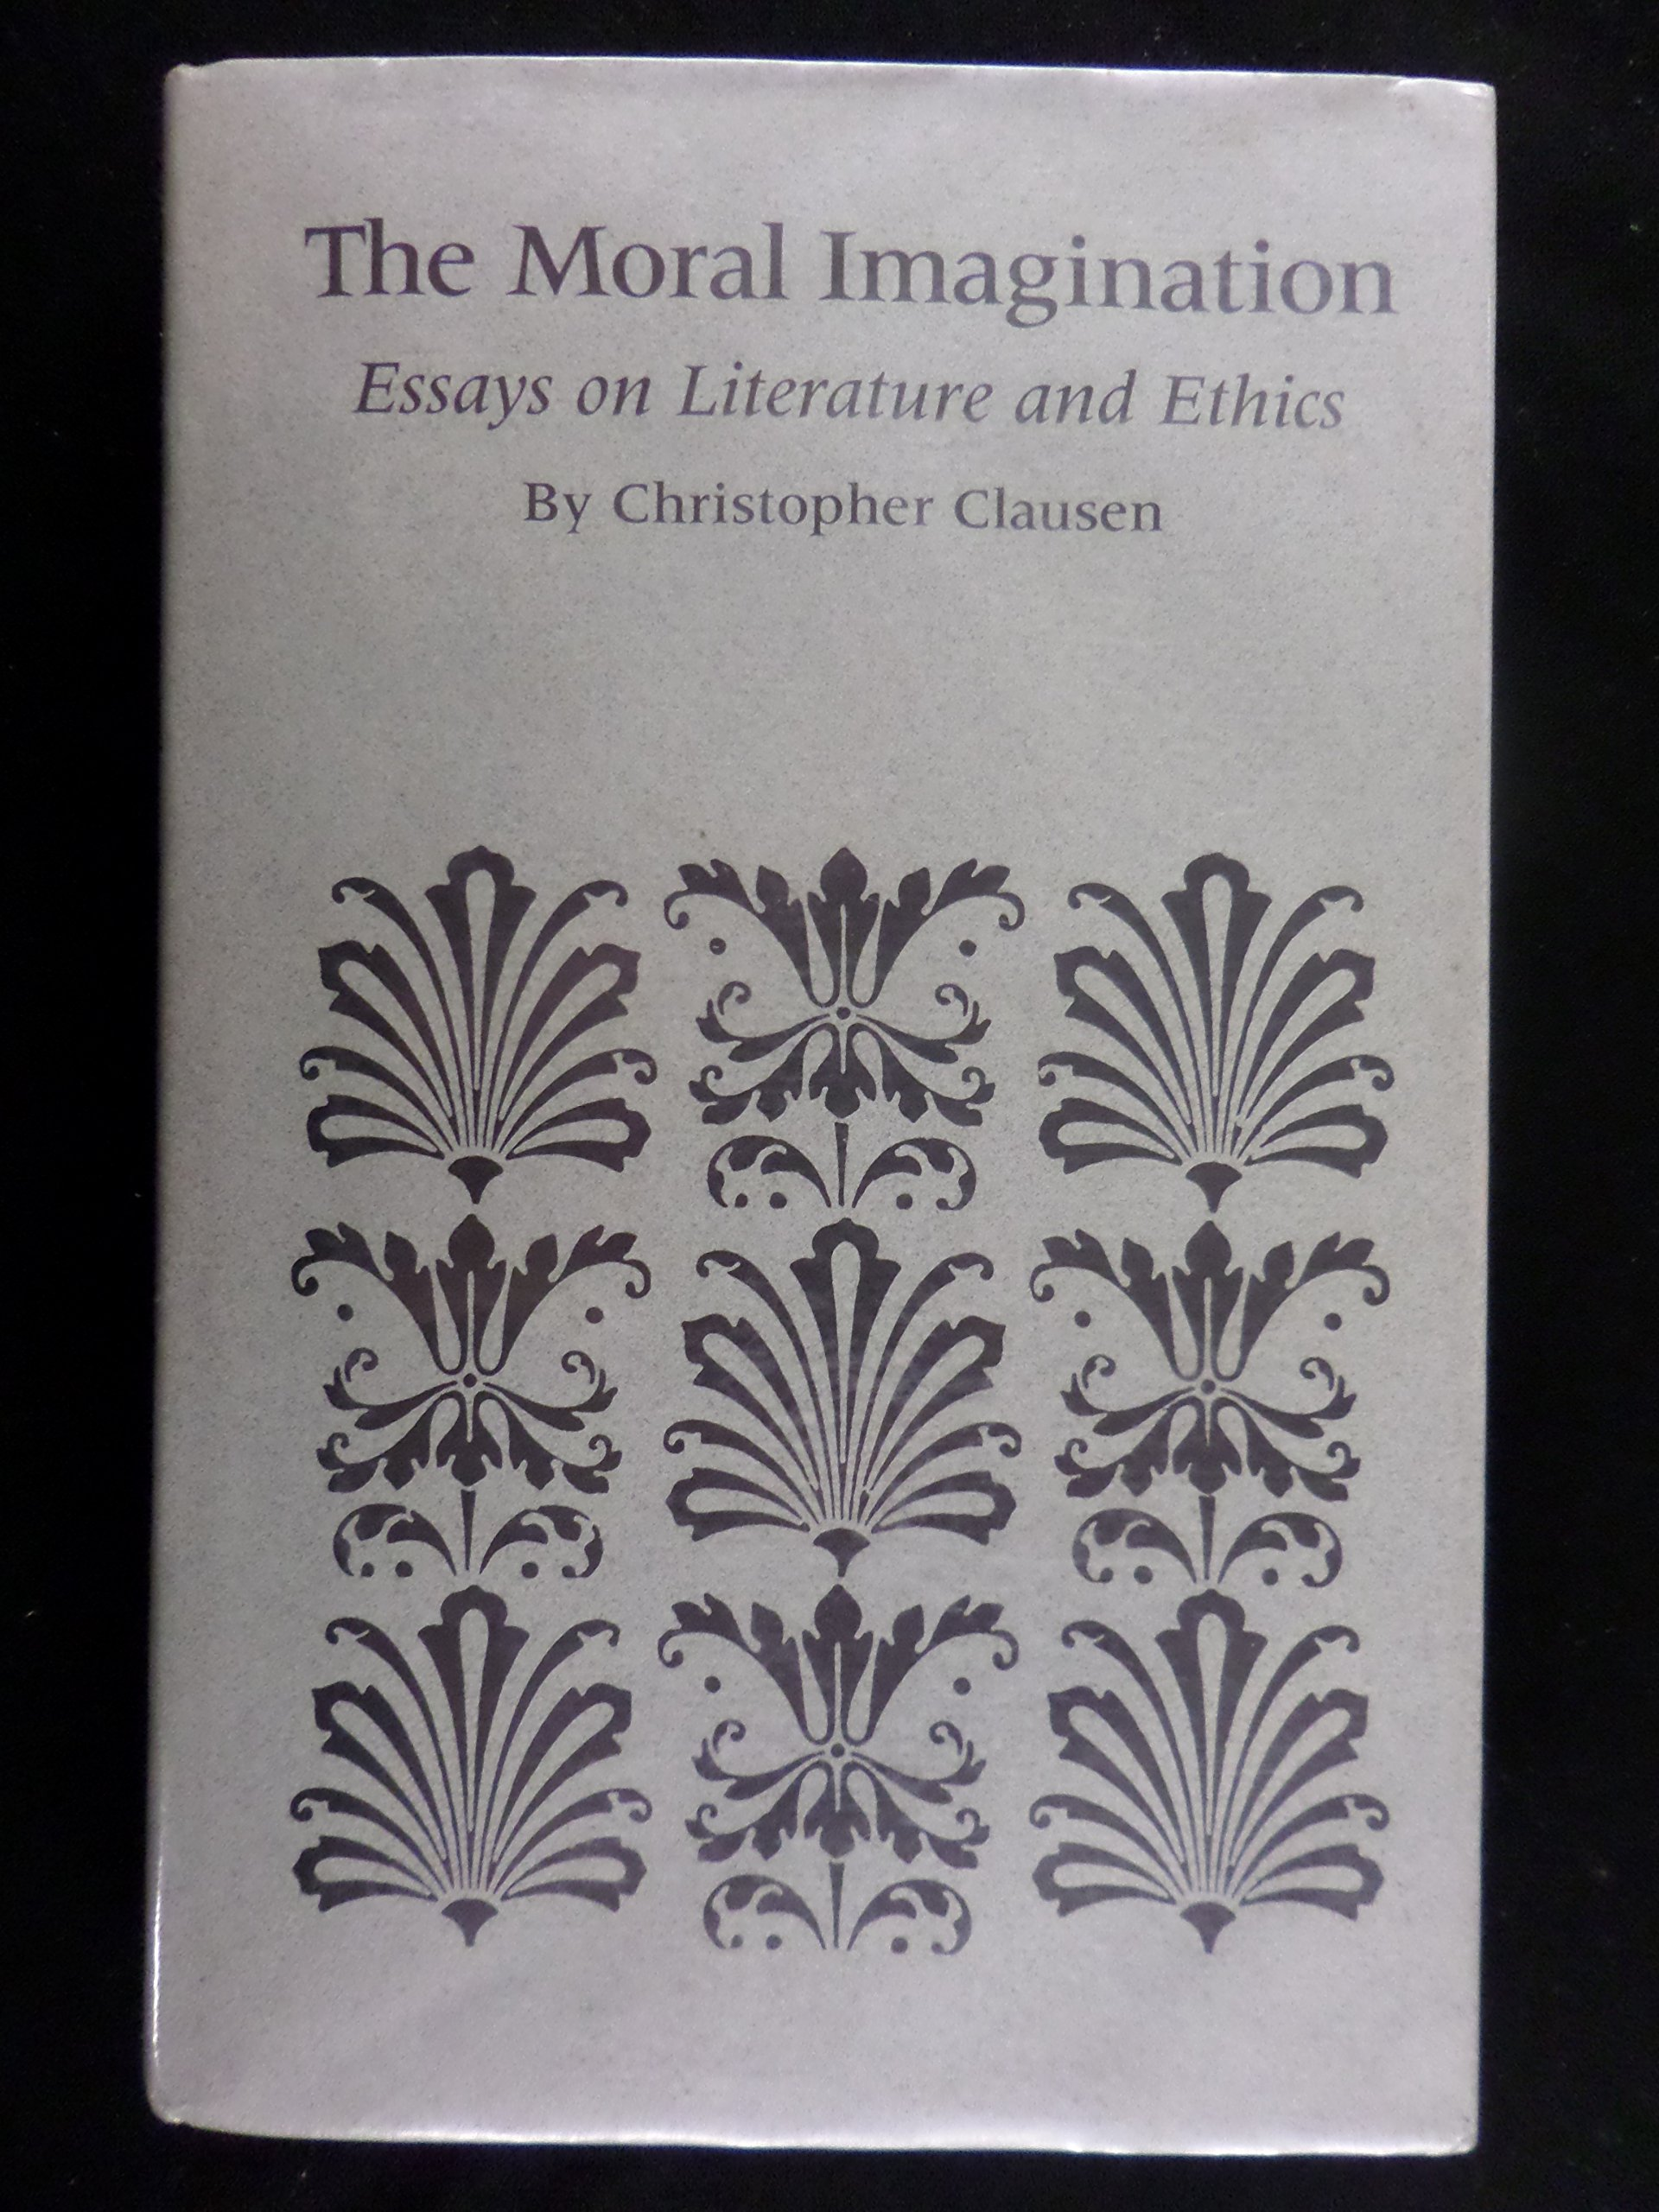 the moral imagination essays on literature and ethics the moral imagination essays on literature and ethics christopher clausen 9780877451518 com books